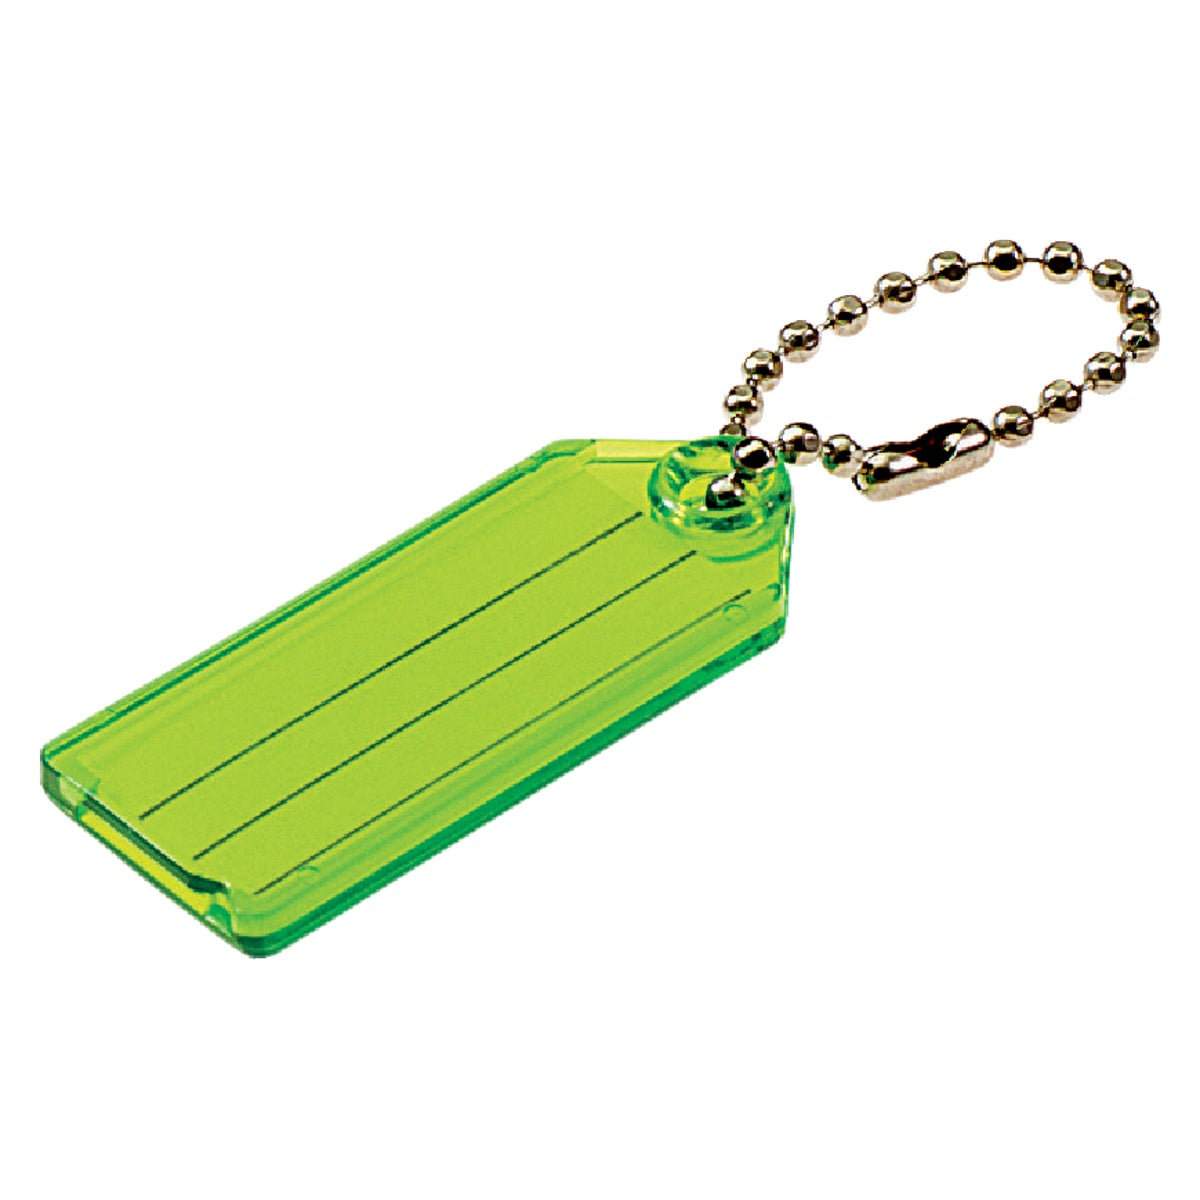 2PK ID KEY TAG W/CHAIN - 10102 by Lucky Line Prod Inc